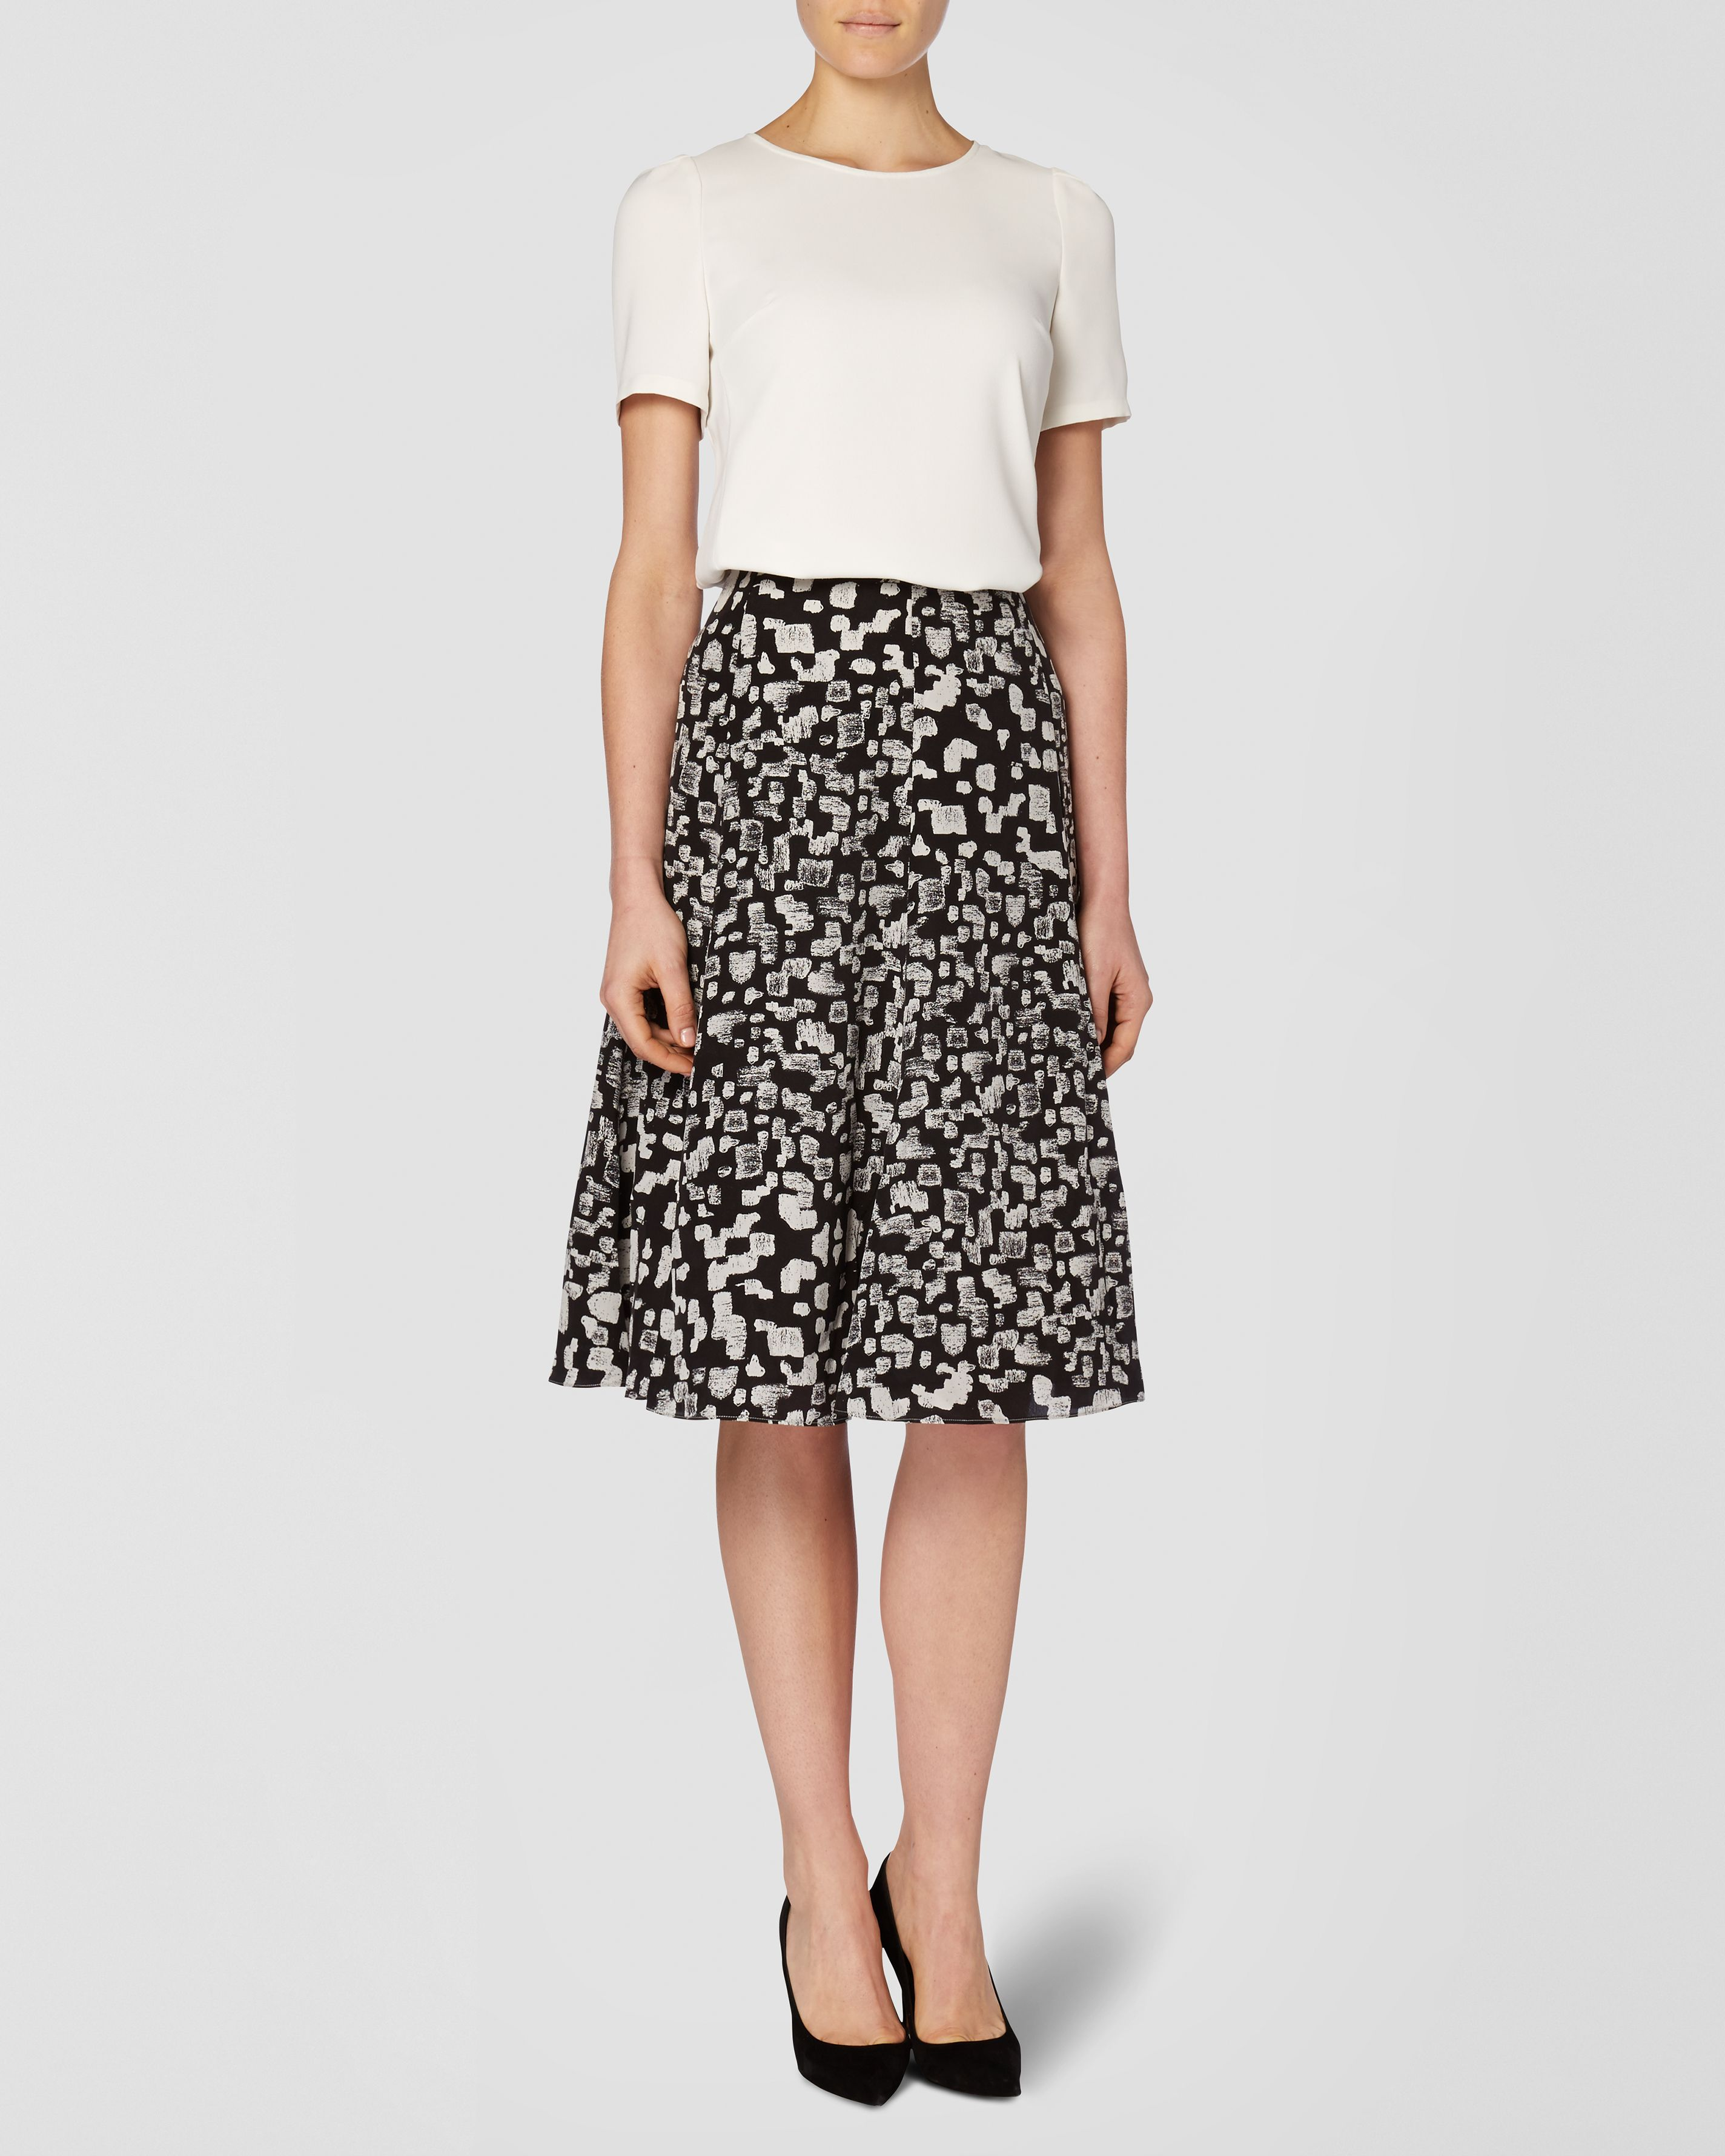 Pebble Print Skirt